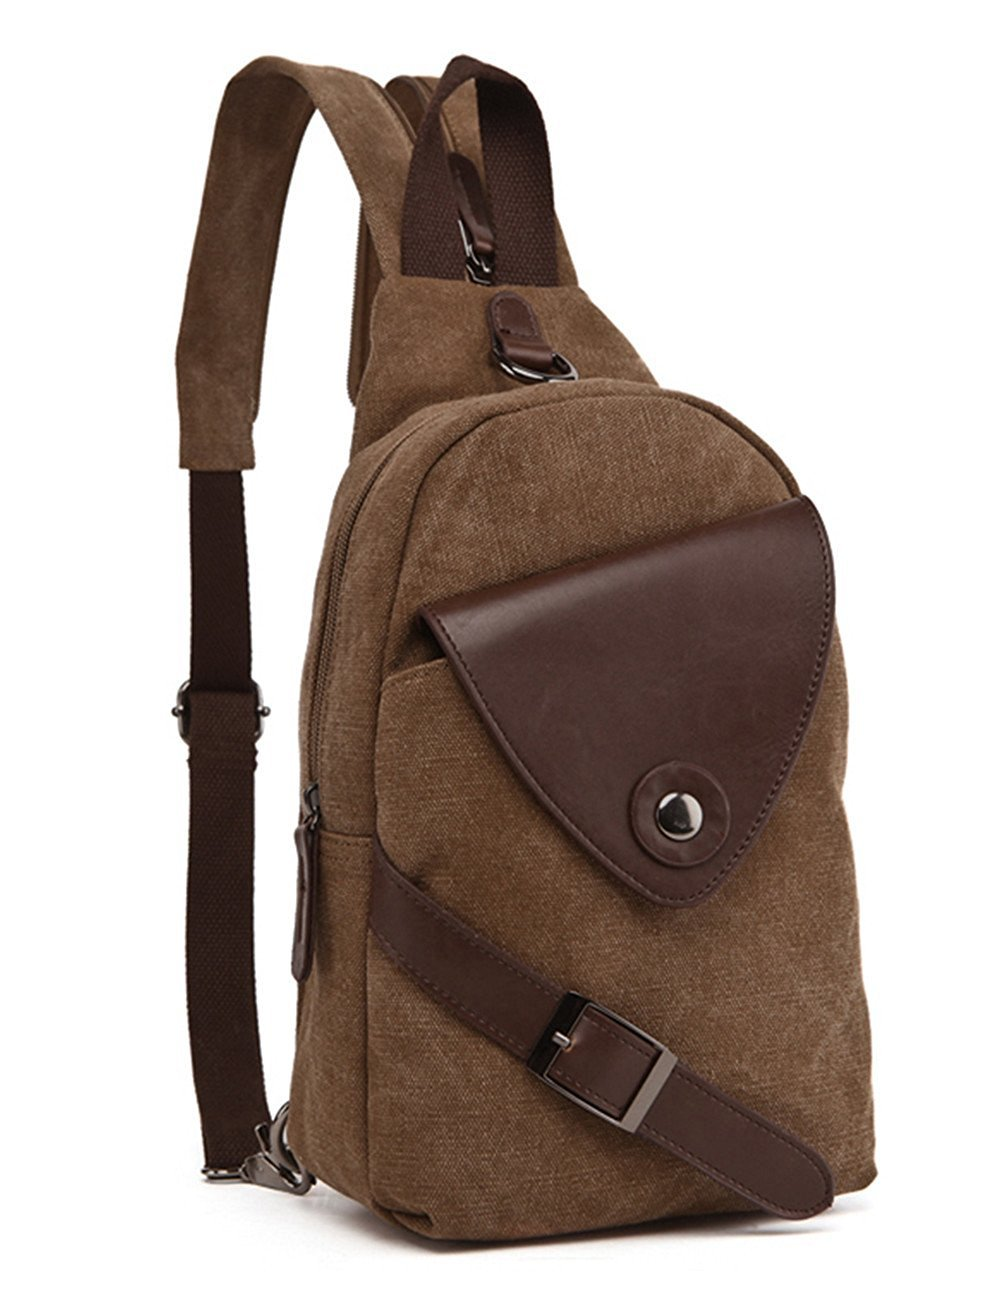 Berchirly Men Multifunctional Canvas Messenger Bag Small Purse Backpack